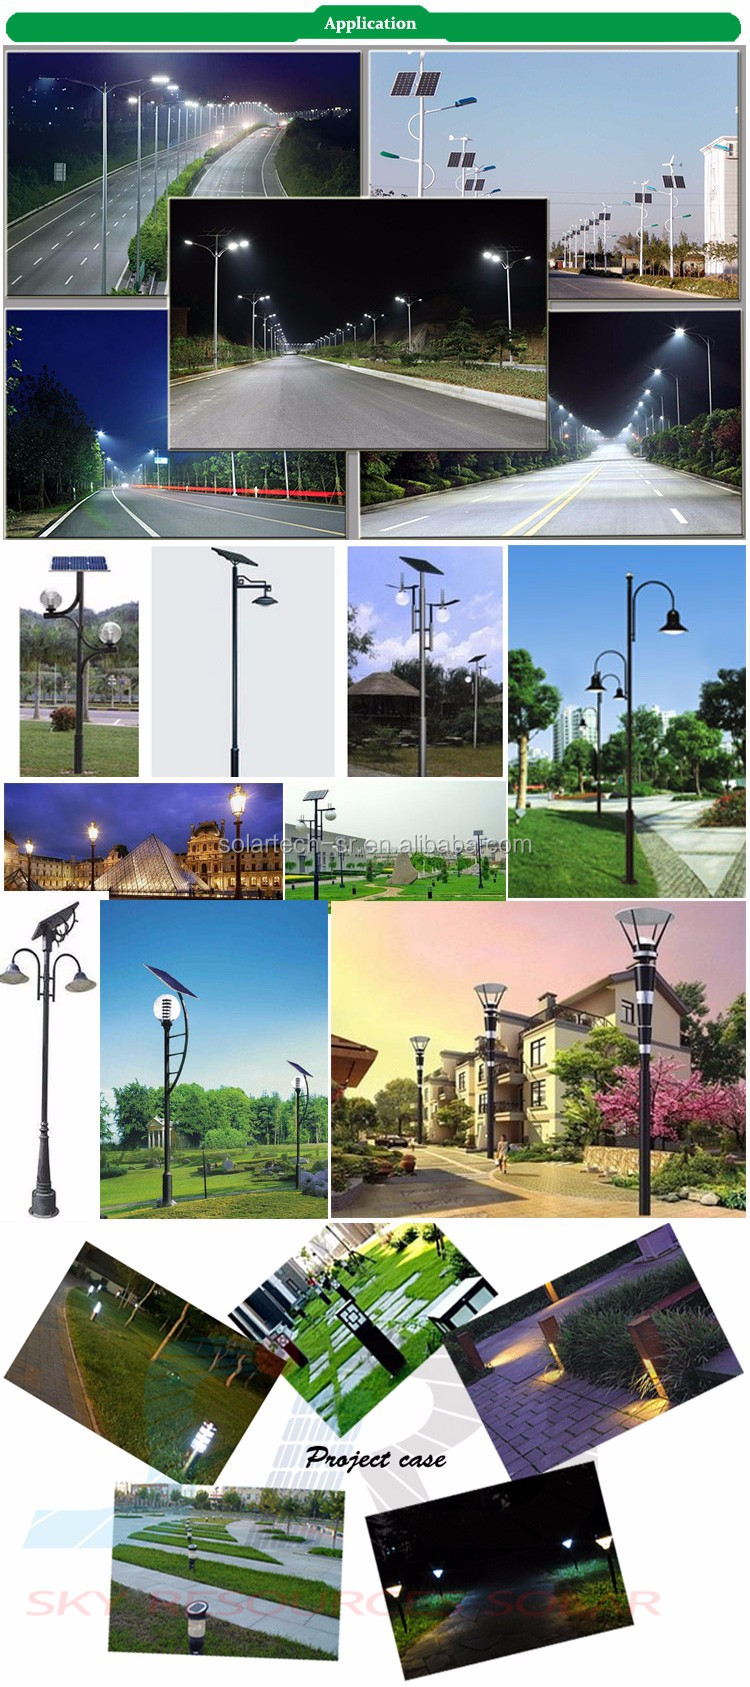 HOT SALES 30W 60w 120w sunpower solar panel for LED street light solar with pole TUV IEC CE RoHS certificate